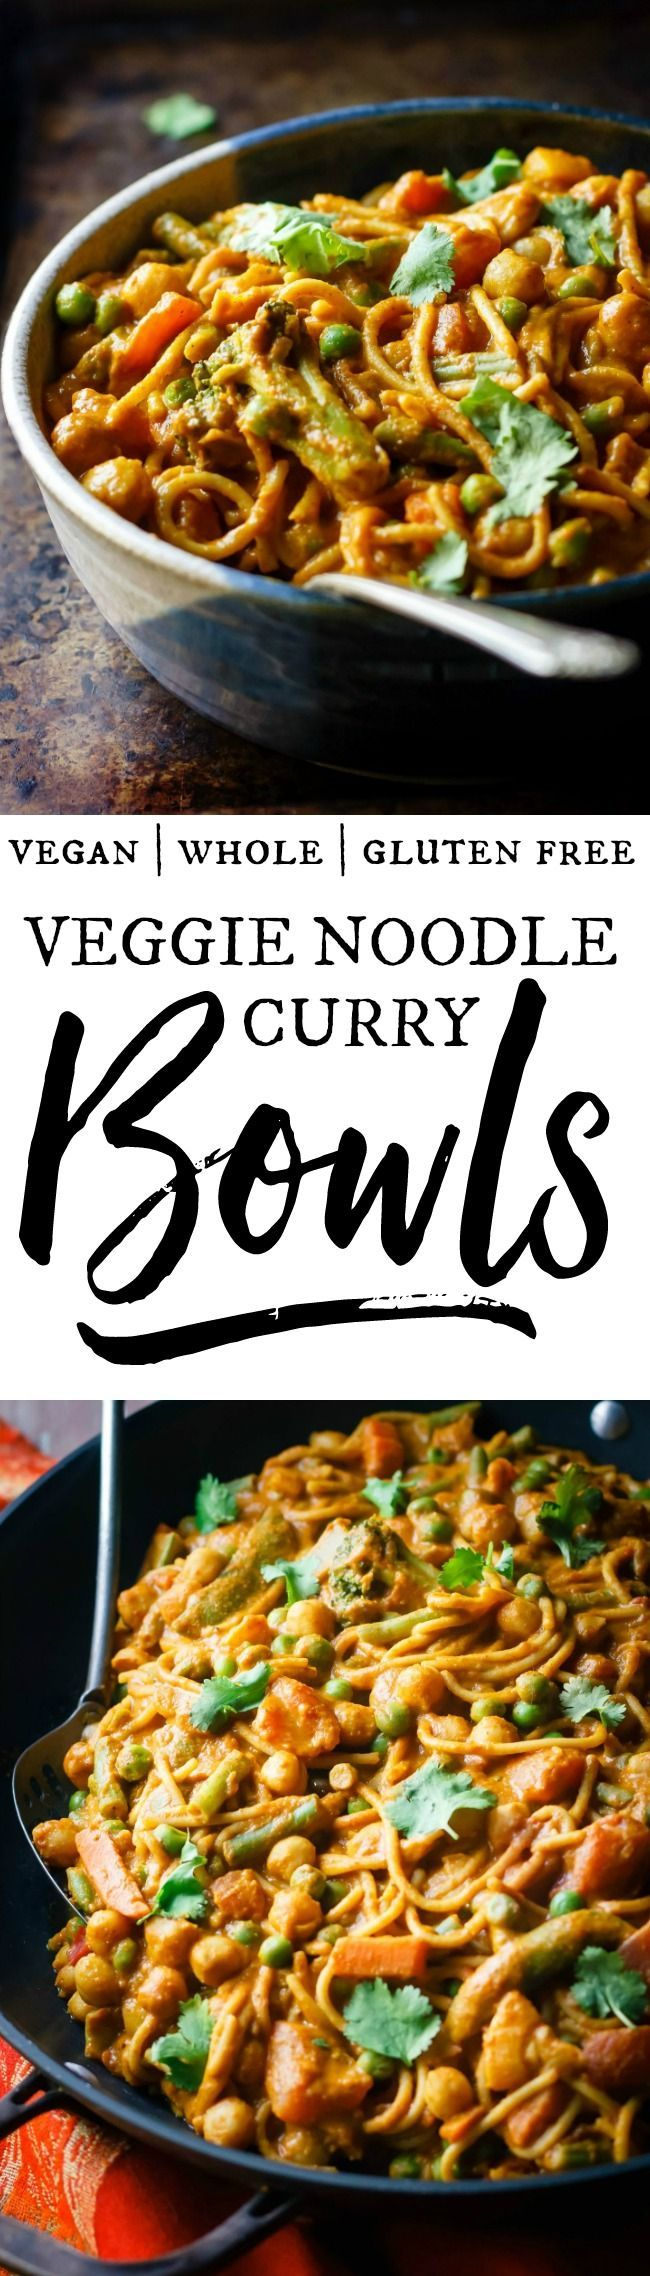 Veggie noodle curry bowls = your favorite noodles, loaded with creamy, spicy sauce and lots of veggies! Perfect when you're craving Indian restaurant flavor in a comforting, bowl-style meal. Vegan, healthy, delicious! via /happy_foodista/